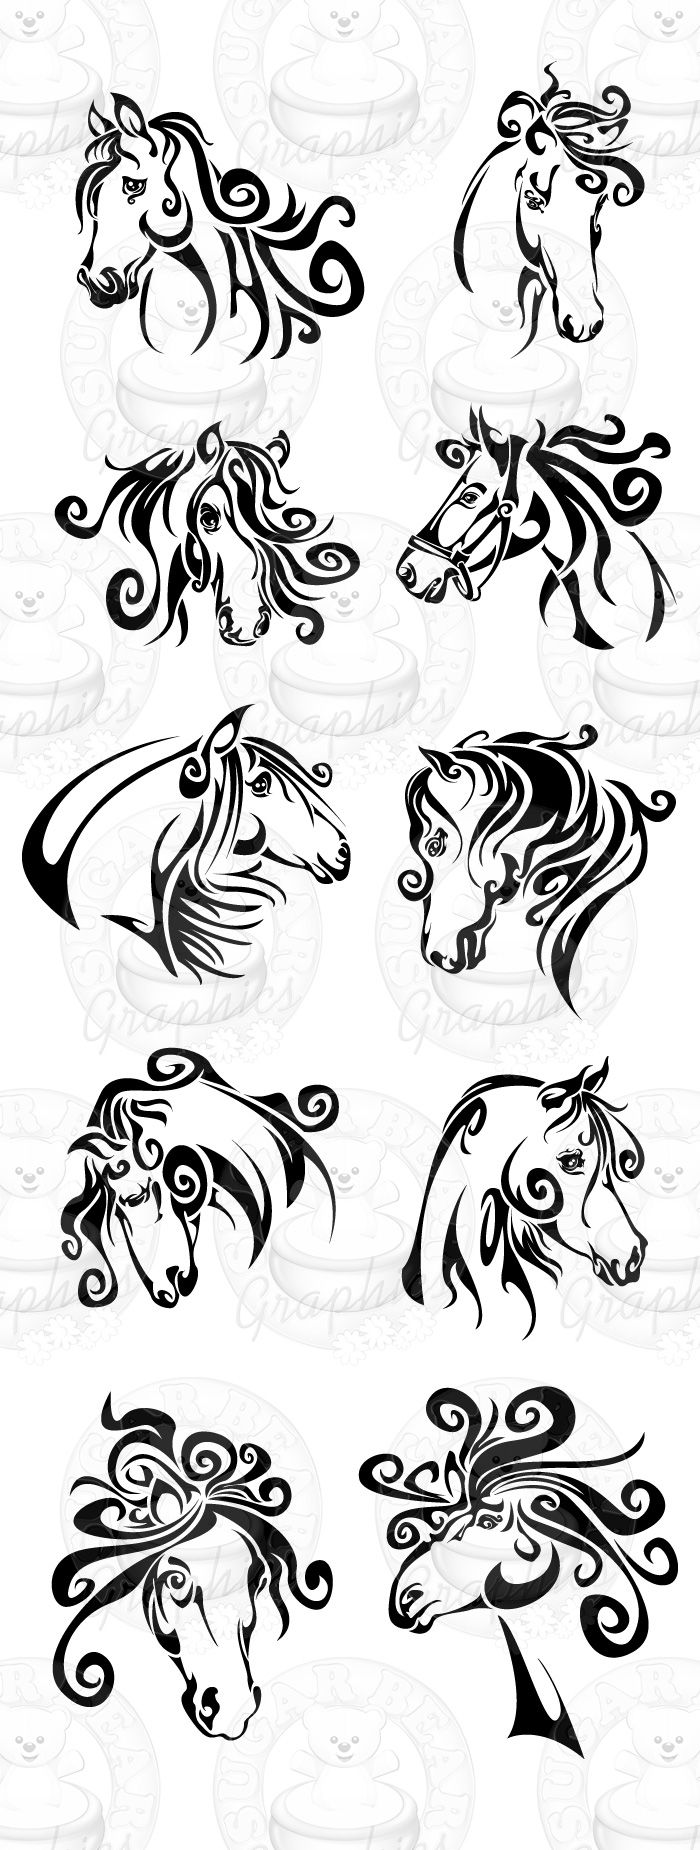 Tribal Horse Heads Tattoo Pack Flores Tey Pinterest Head